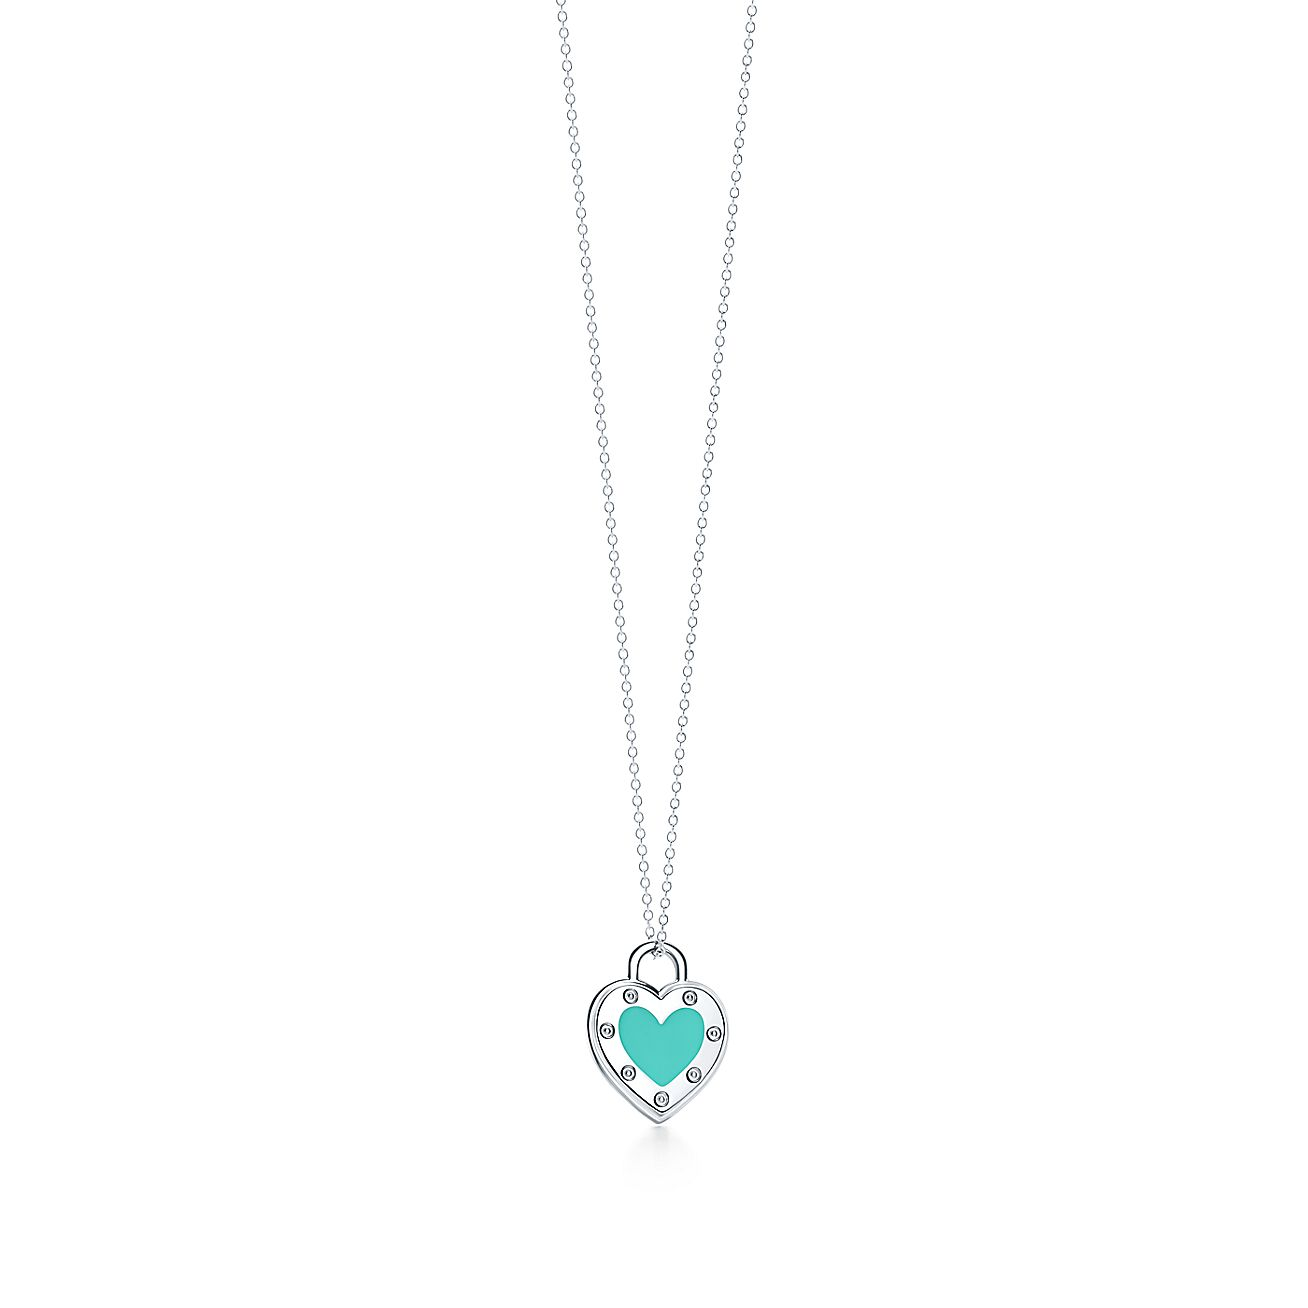 Return to tiffany love heart pendant in silver with enamel finish return to tiffany love heart pendant in silver with enamel finish medium tiffany co aloadofball Image collections